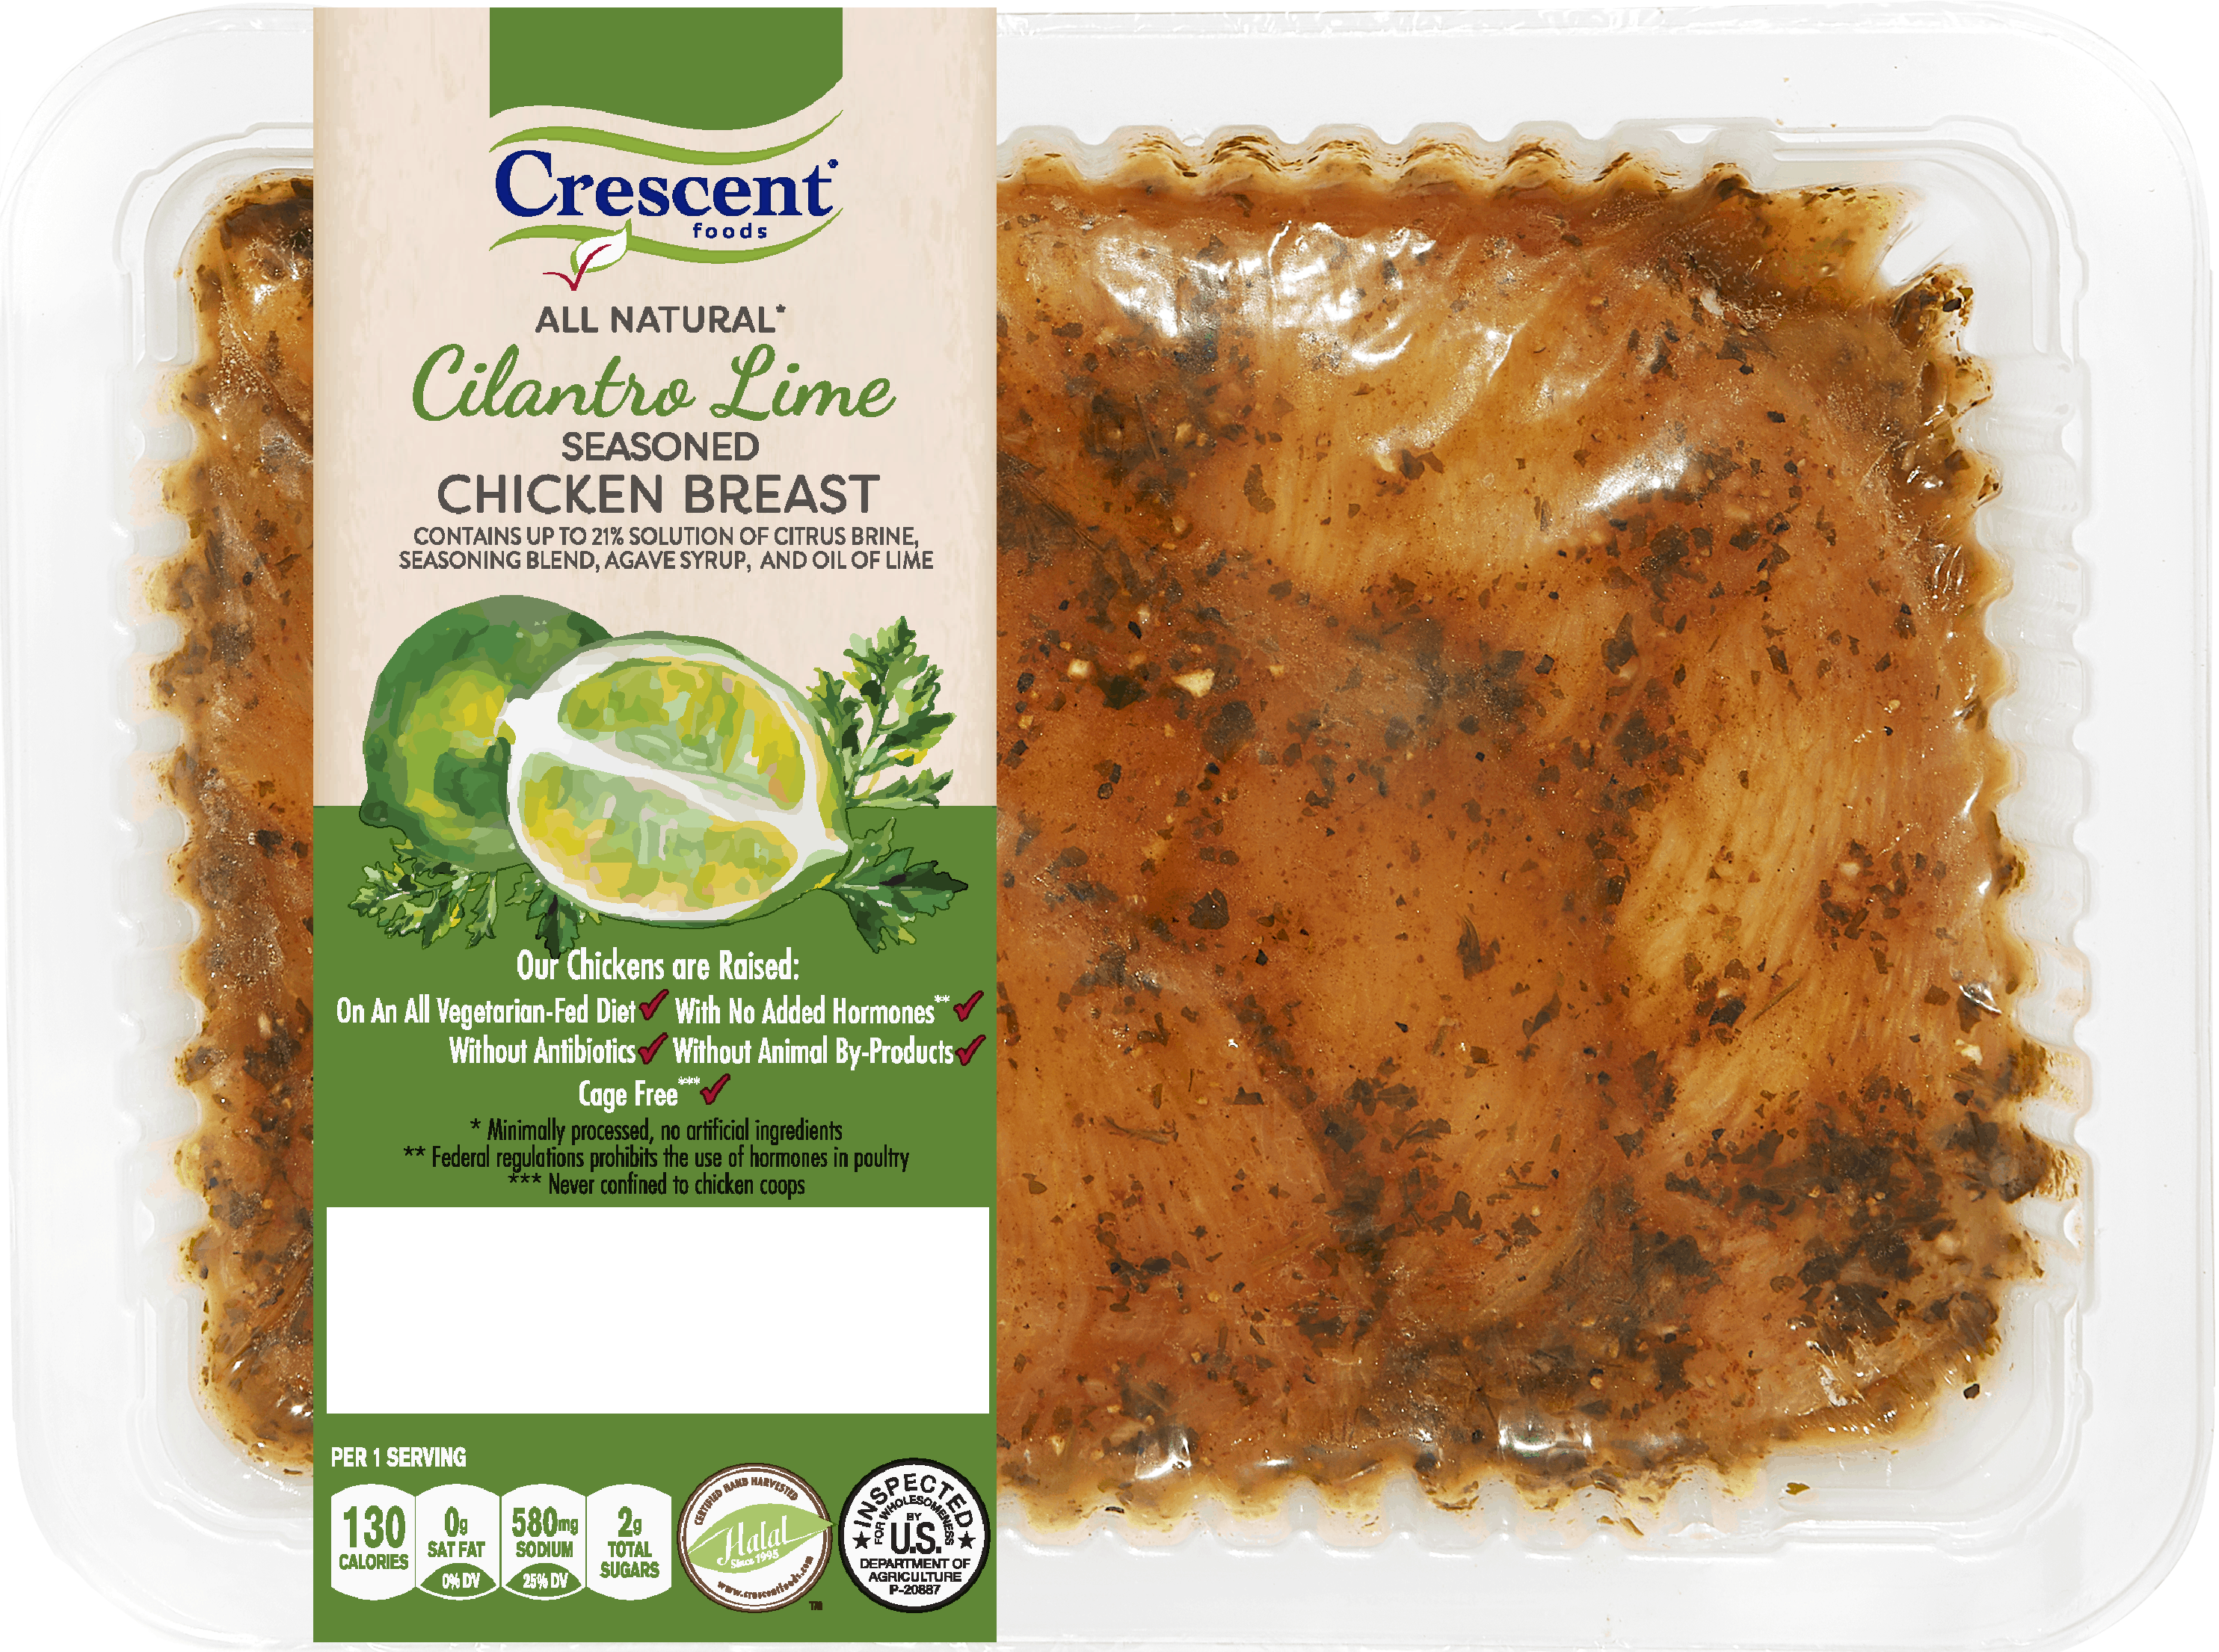 Crescent Foods Premium Halal Hand-Cut™ Cilantro Lime Seasoned Chicken Breast in packaging